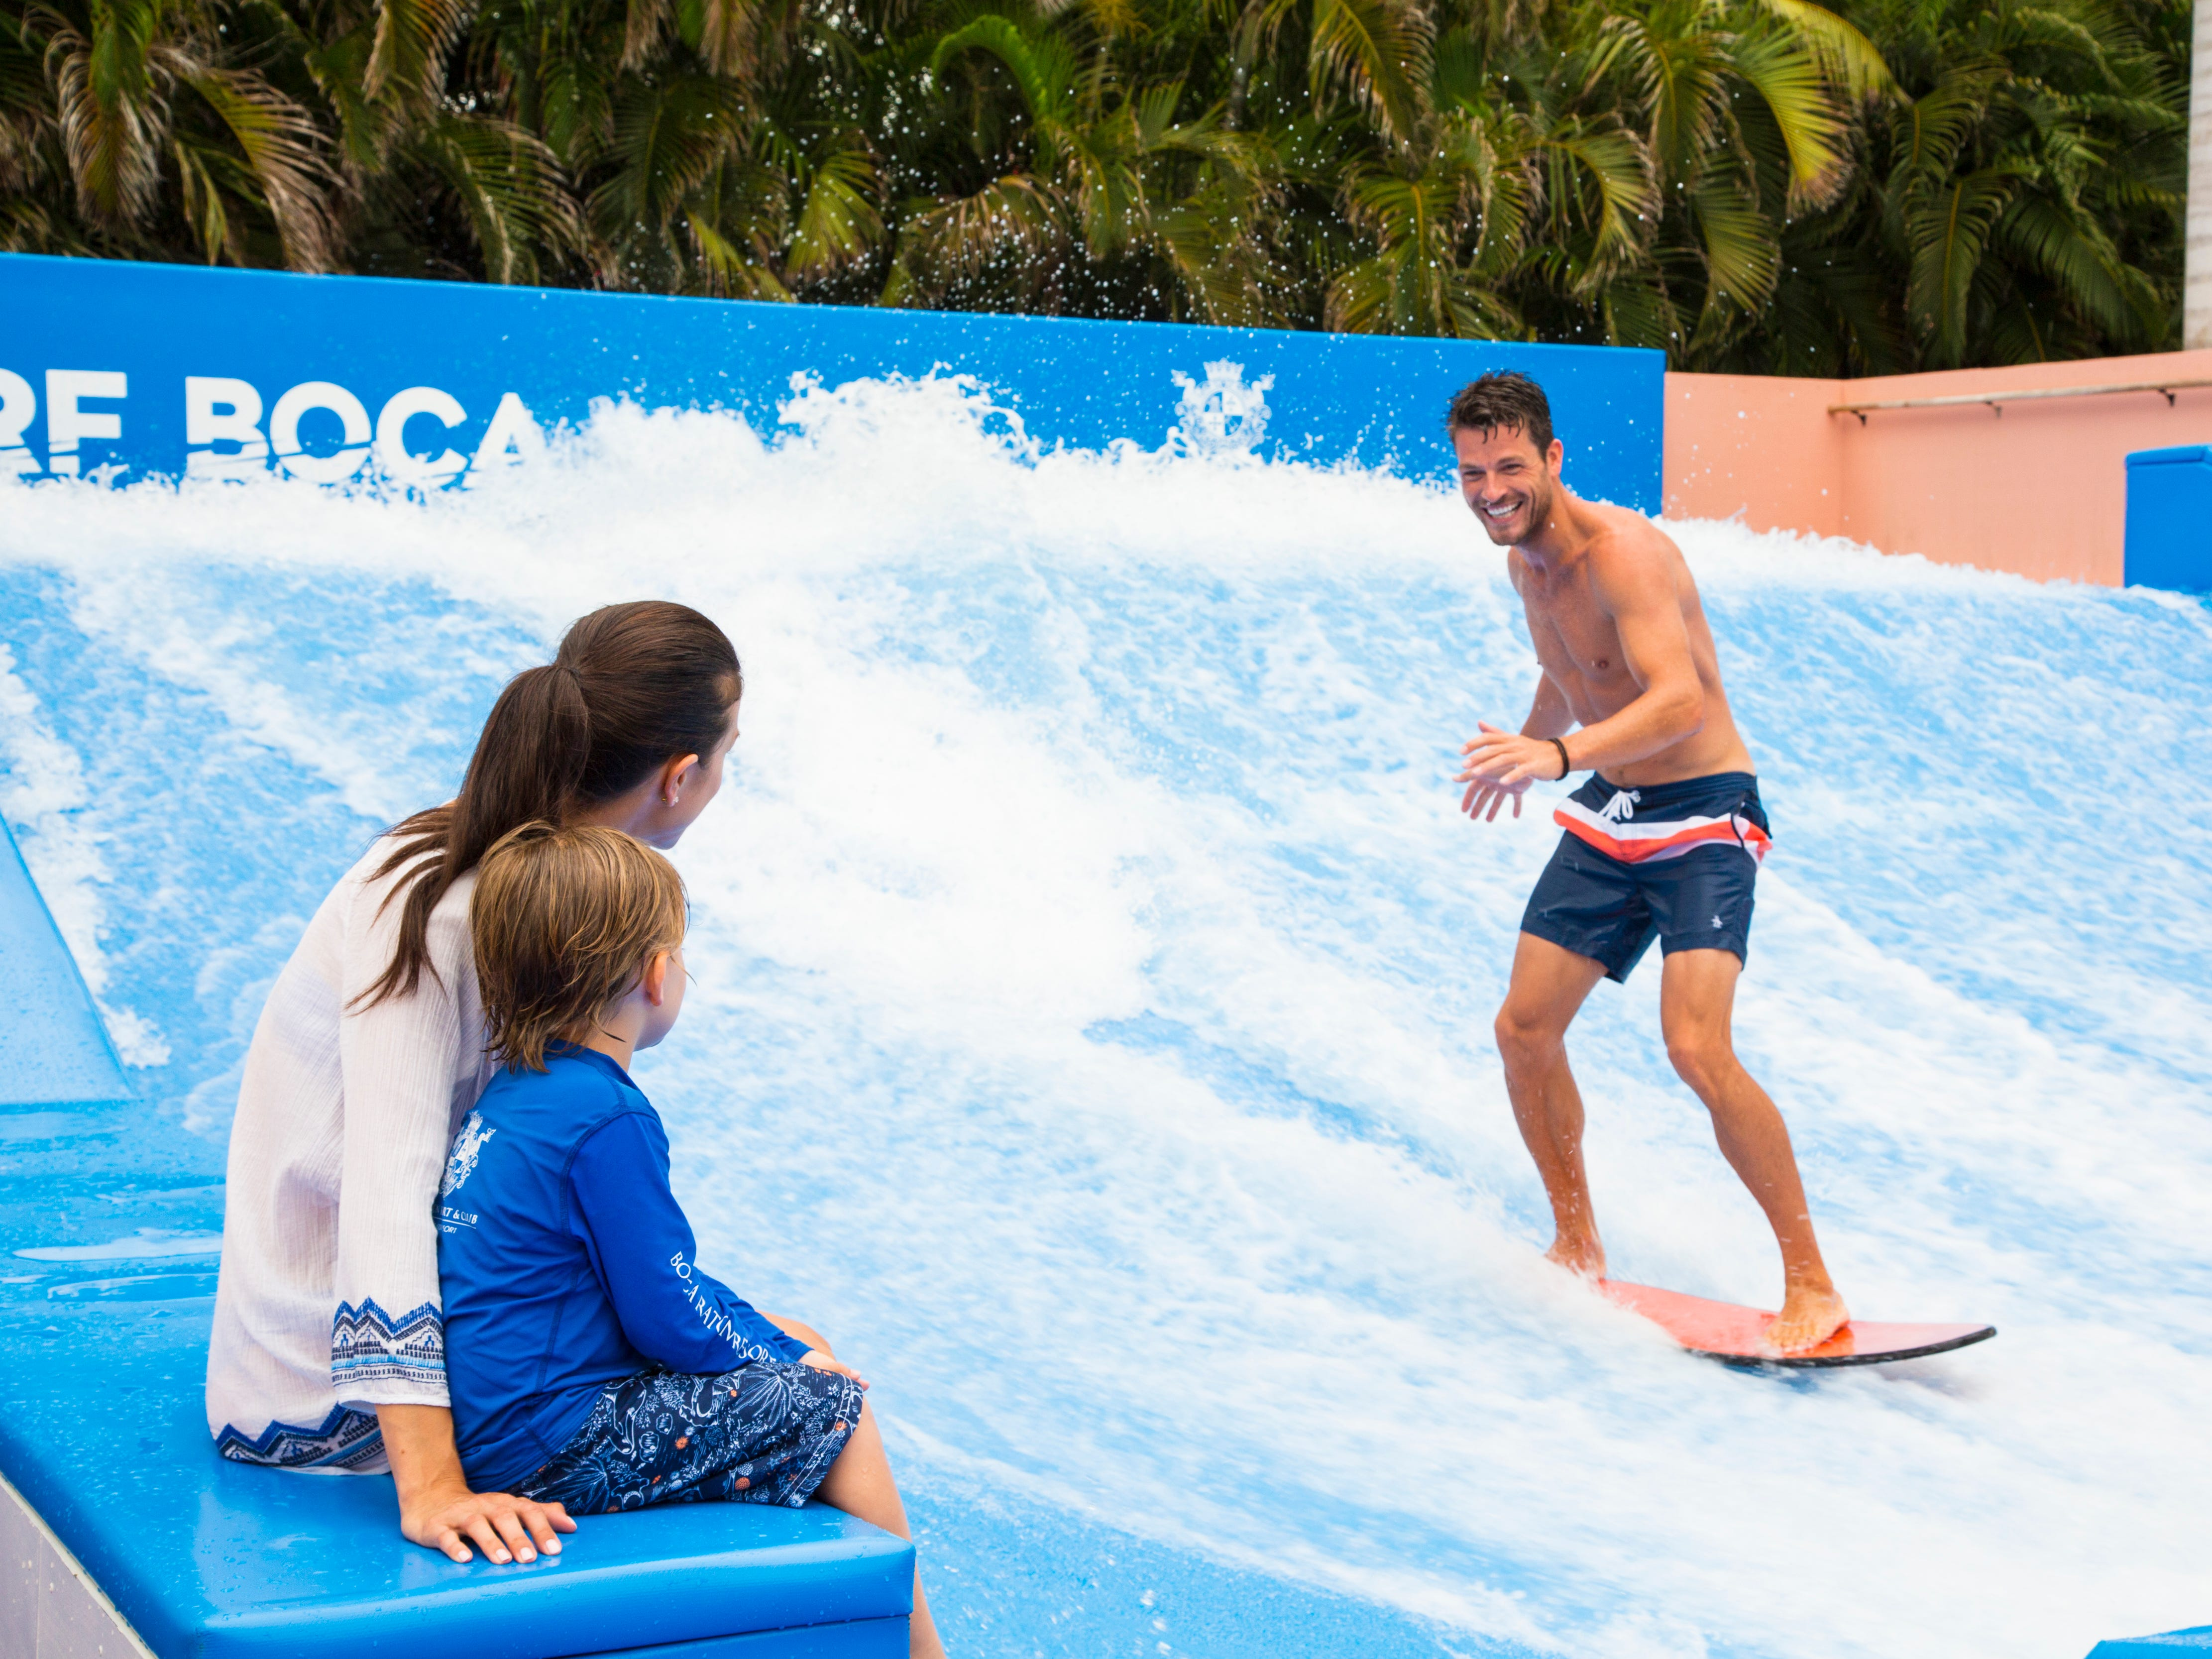 South Florida's first FlowHouse, a dual-sided FlowRider wave simulator for flow and bodyboarding, at Boca Raton Resort & Club.